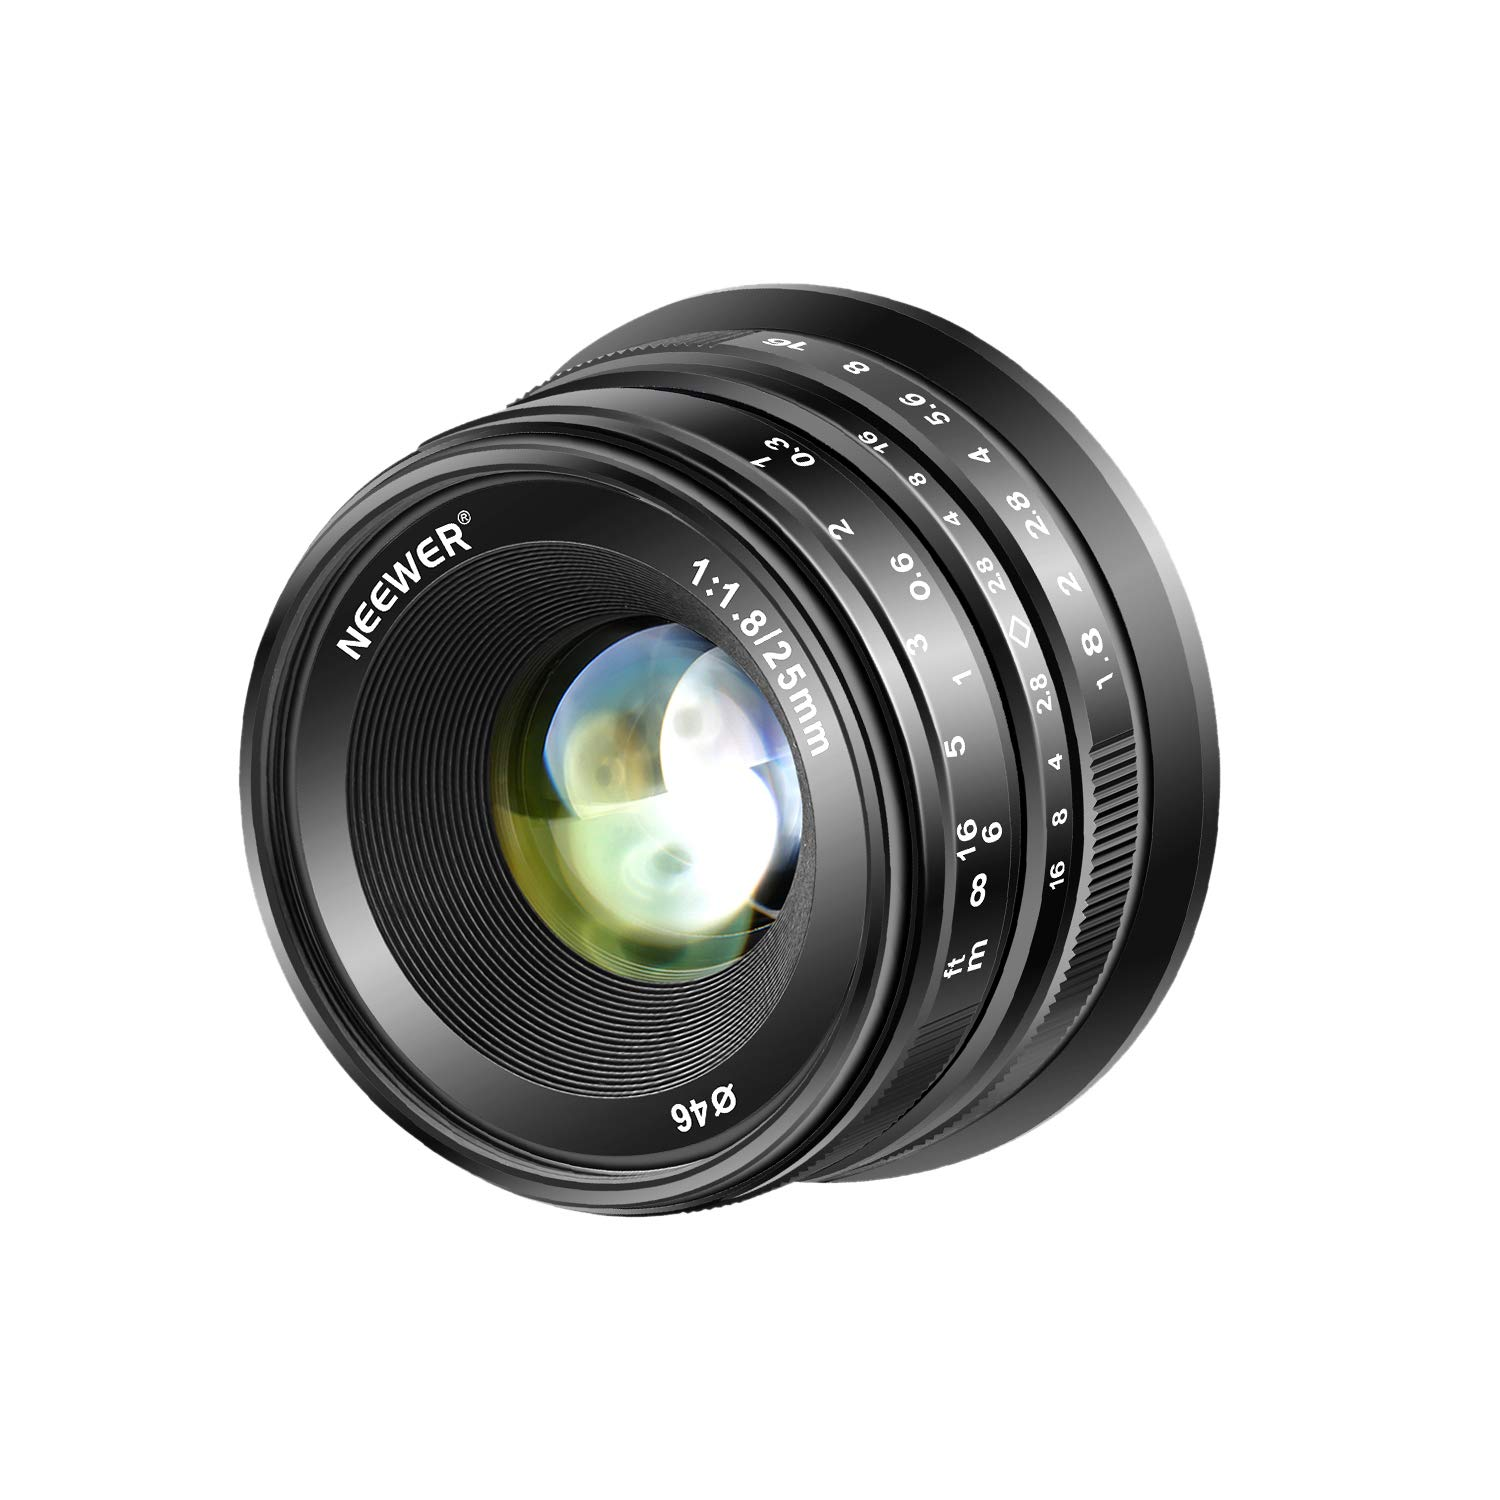 Neewer 25mm f/1.8 Manual Focus Prime Fixed Lens for Fujifilm APS-C Digital Mirrorless Cameras XPro2 XE3 XH2 X100F X100T X100S XH1 XF2 XPro1, All Metal Construction (Black) by Neewer